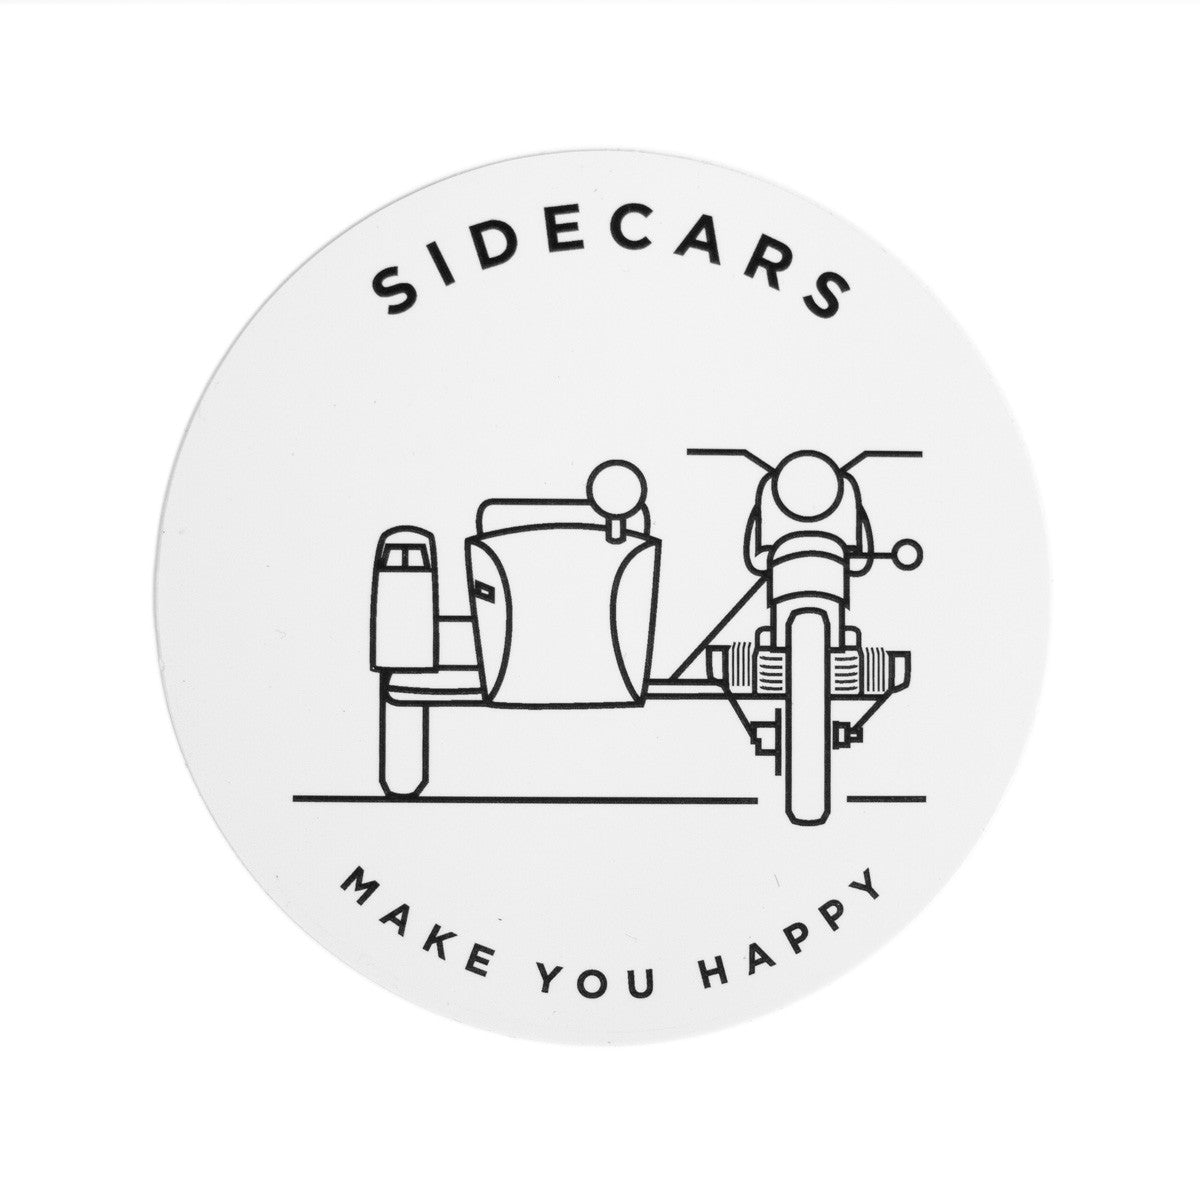 Sidecars Make You Happy Sticker